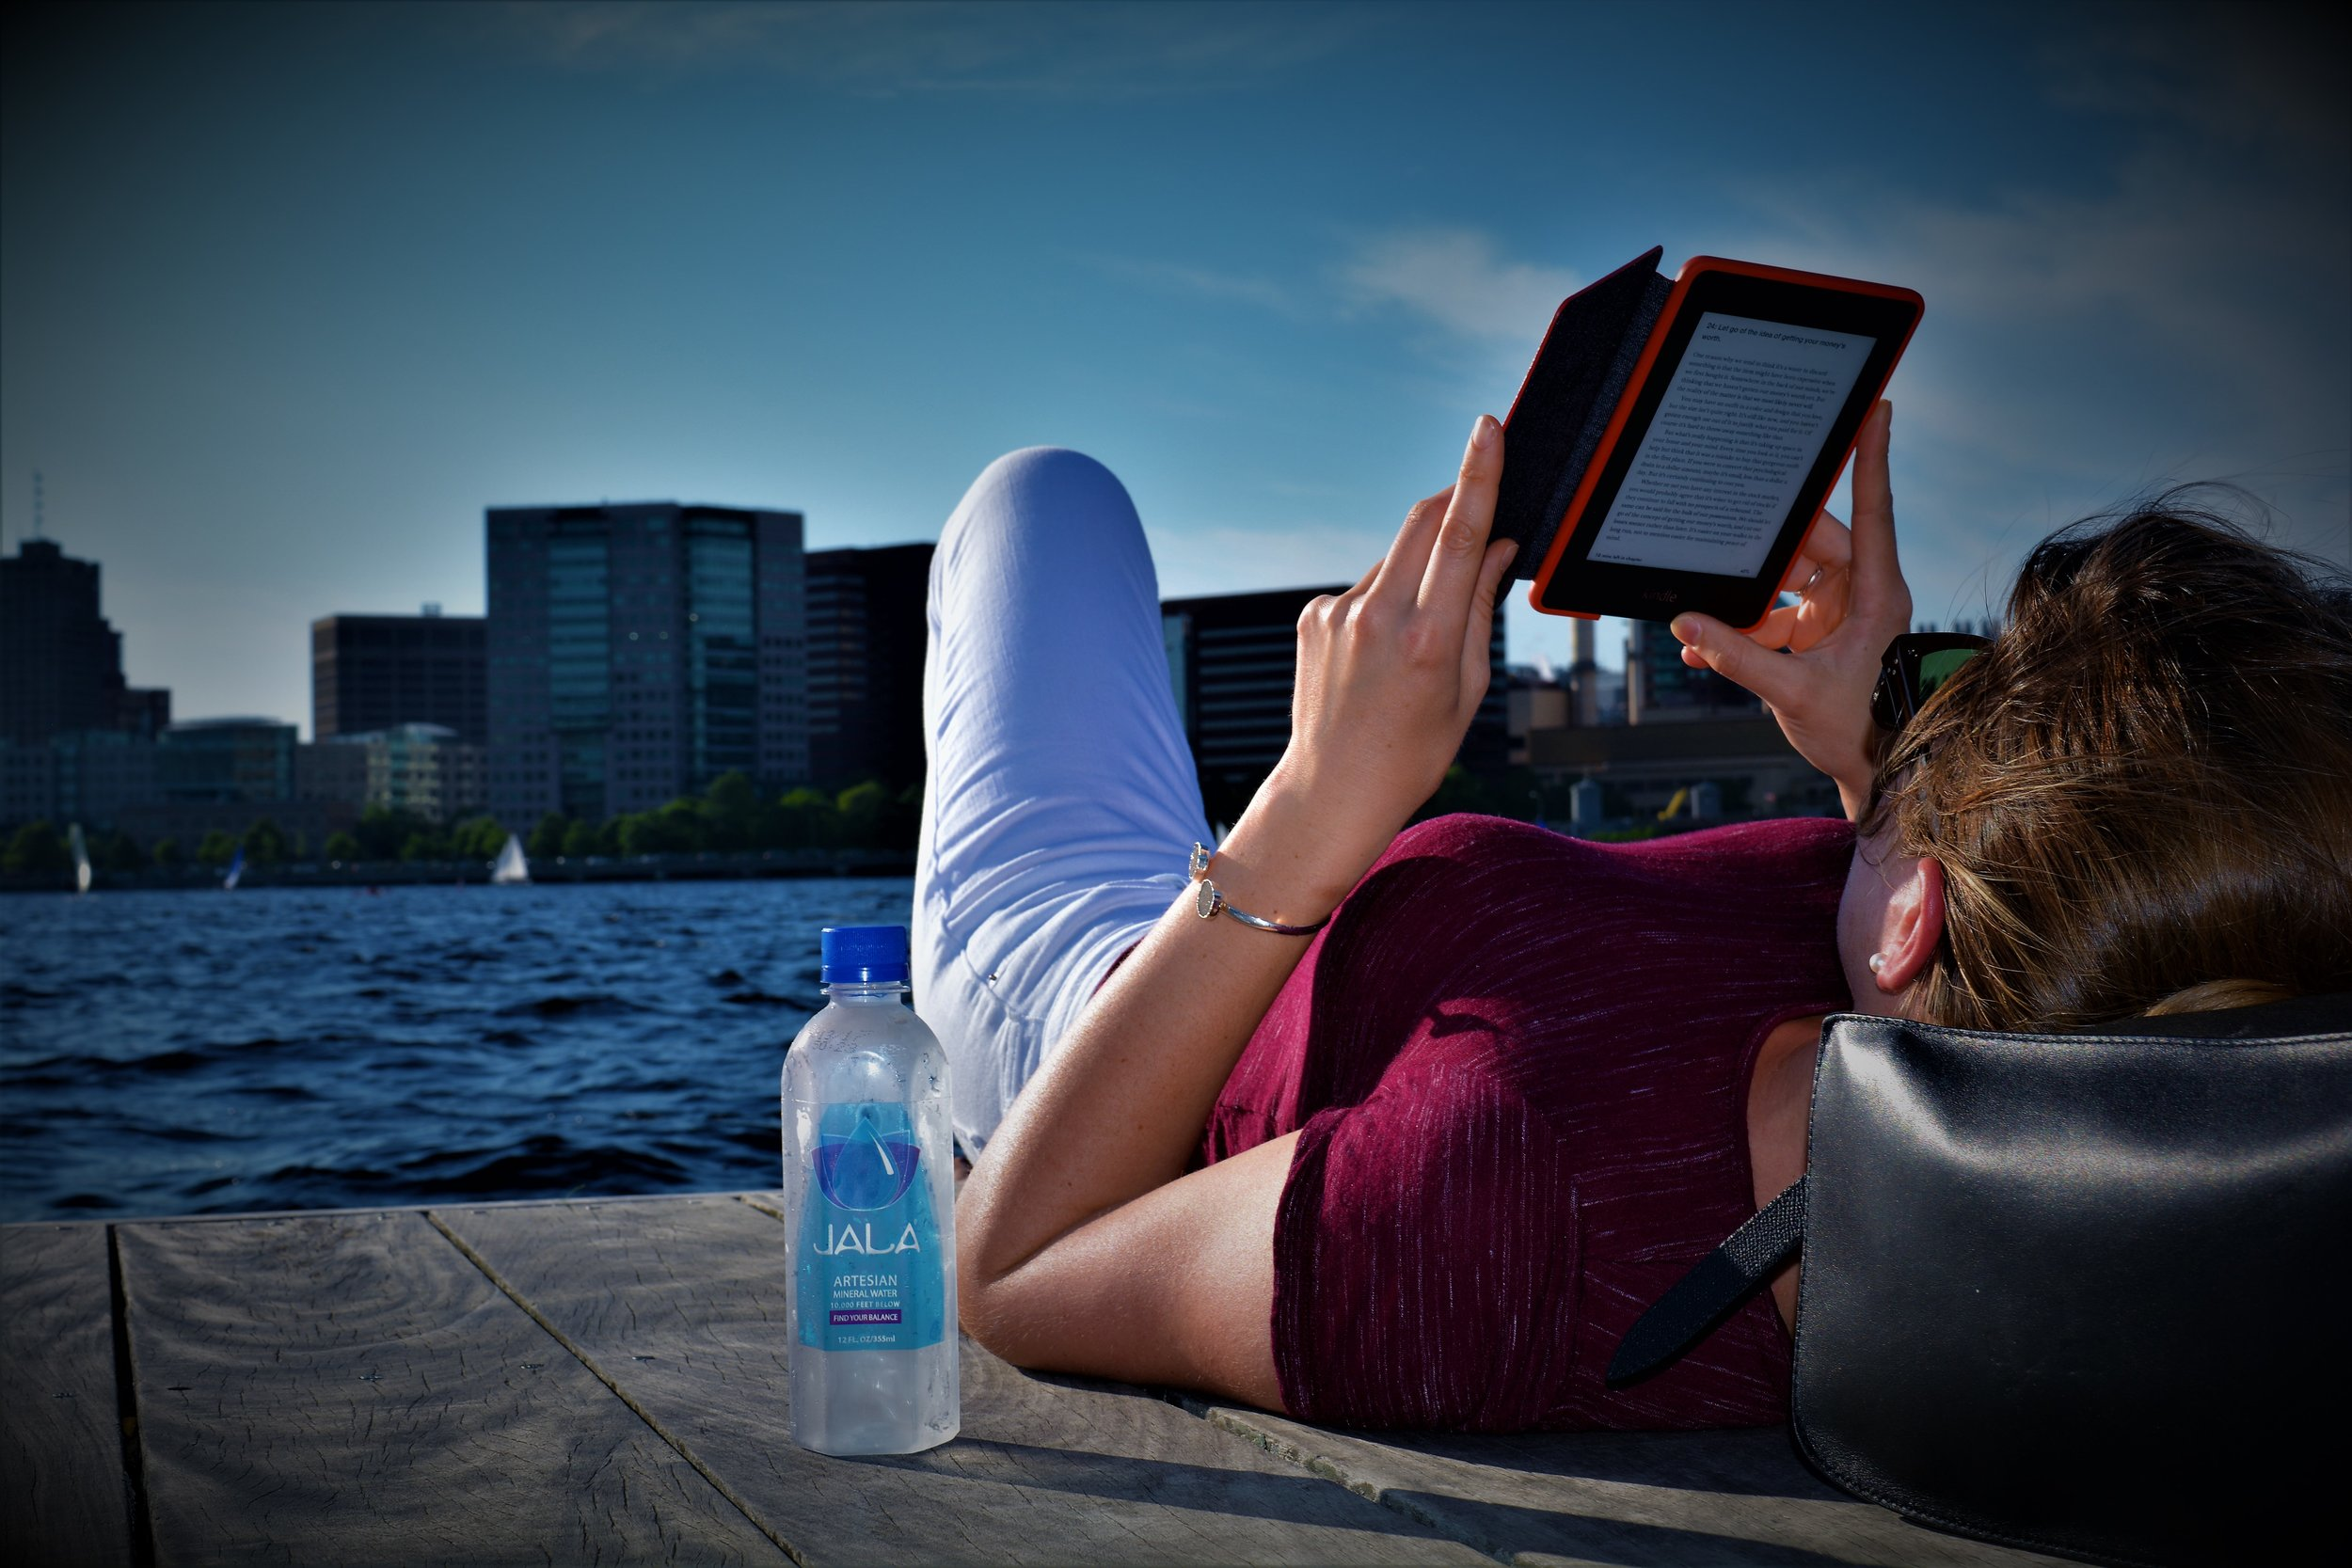 Relaxing on the Charles River in Boston, MA